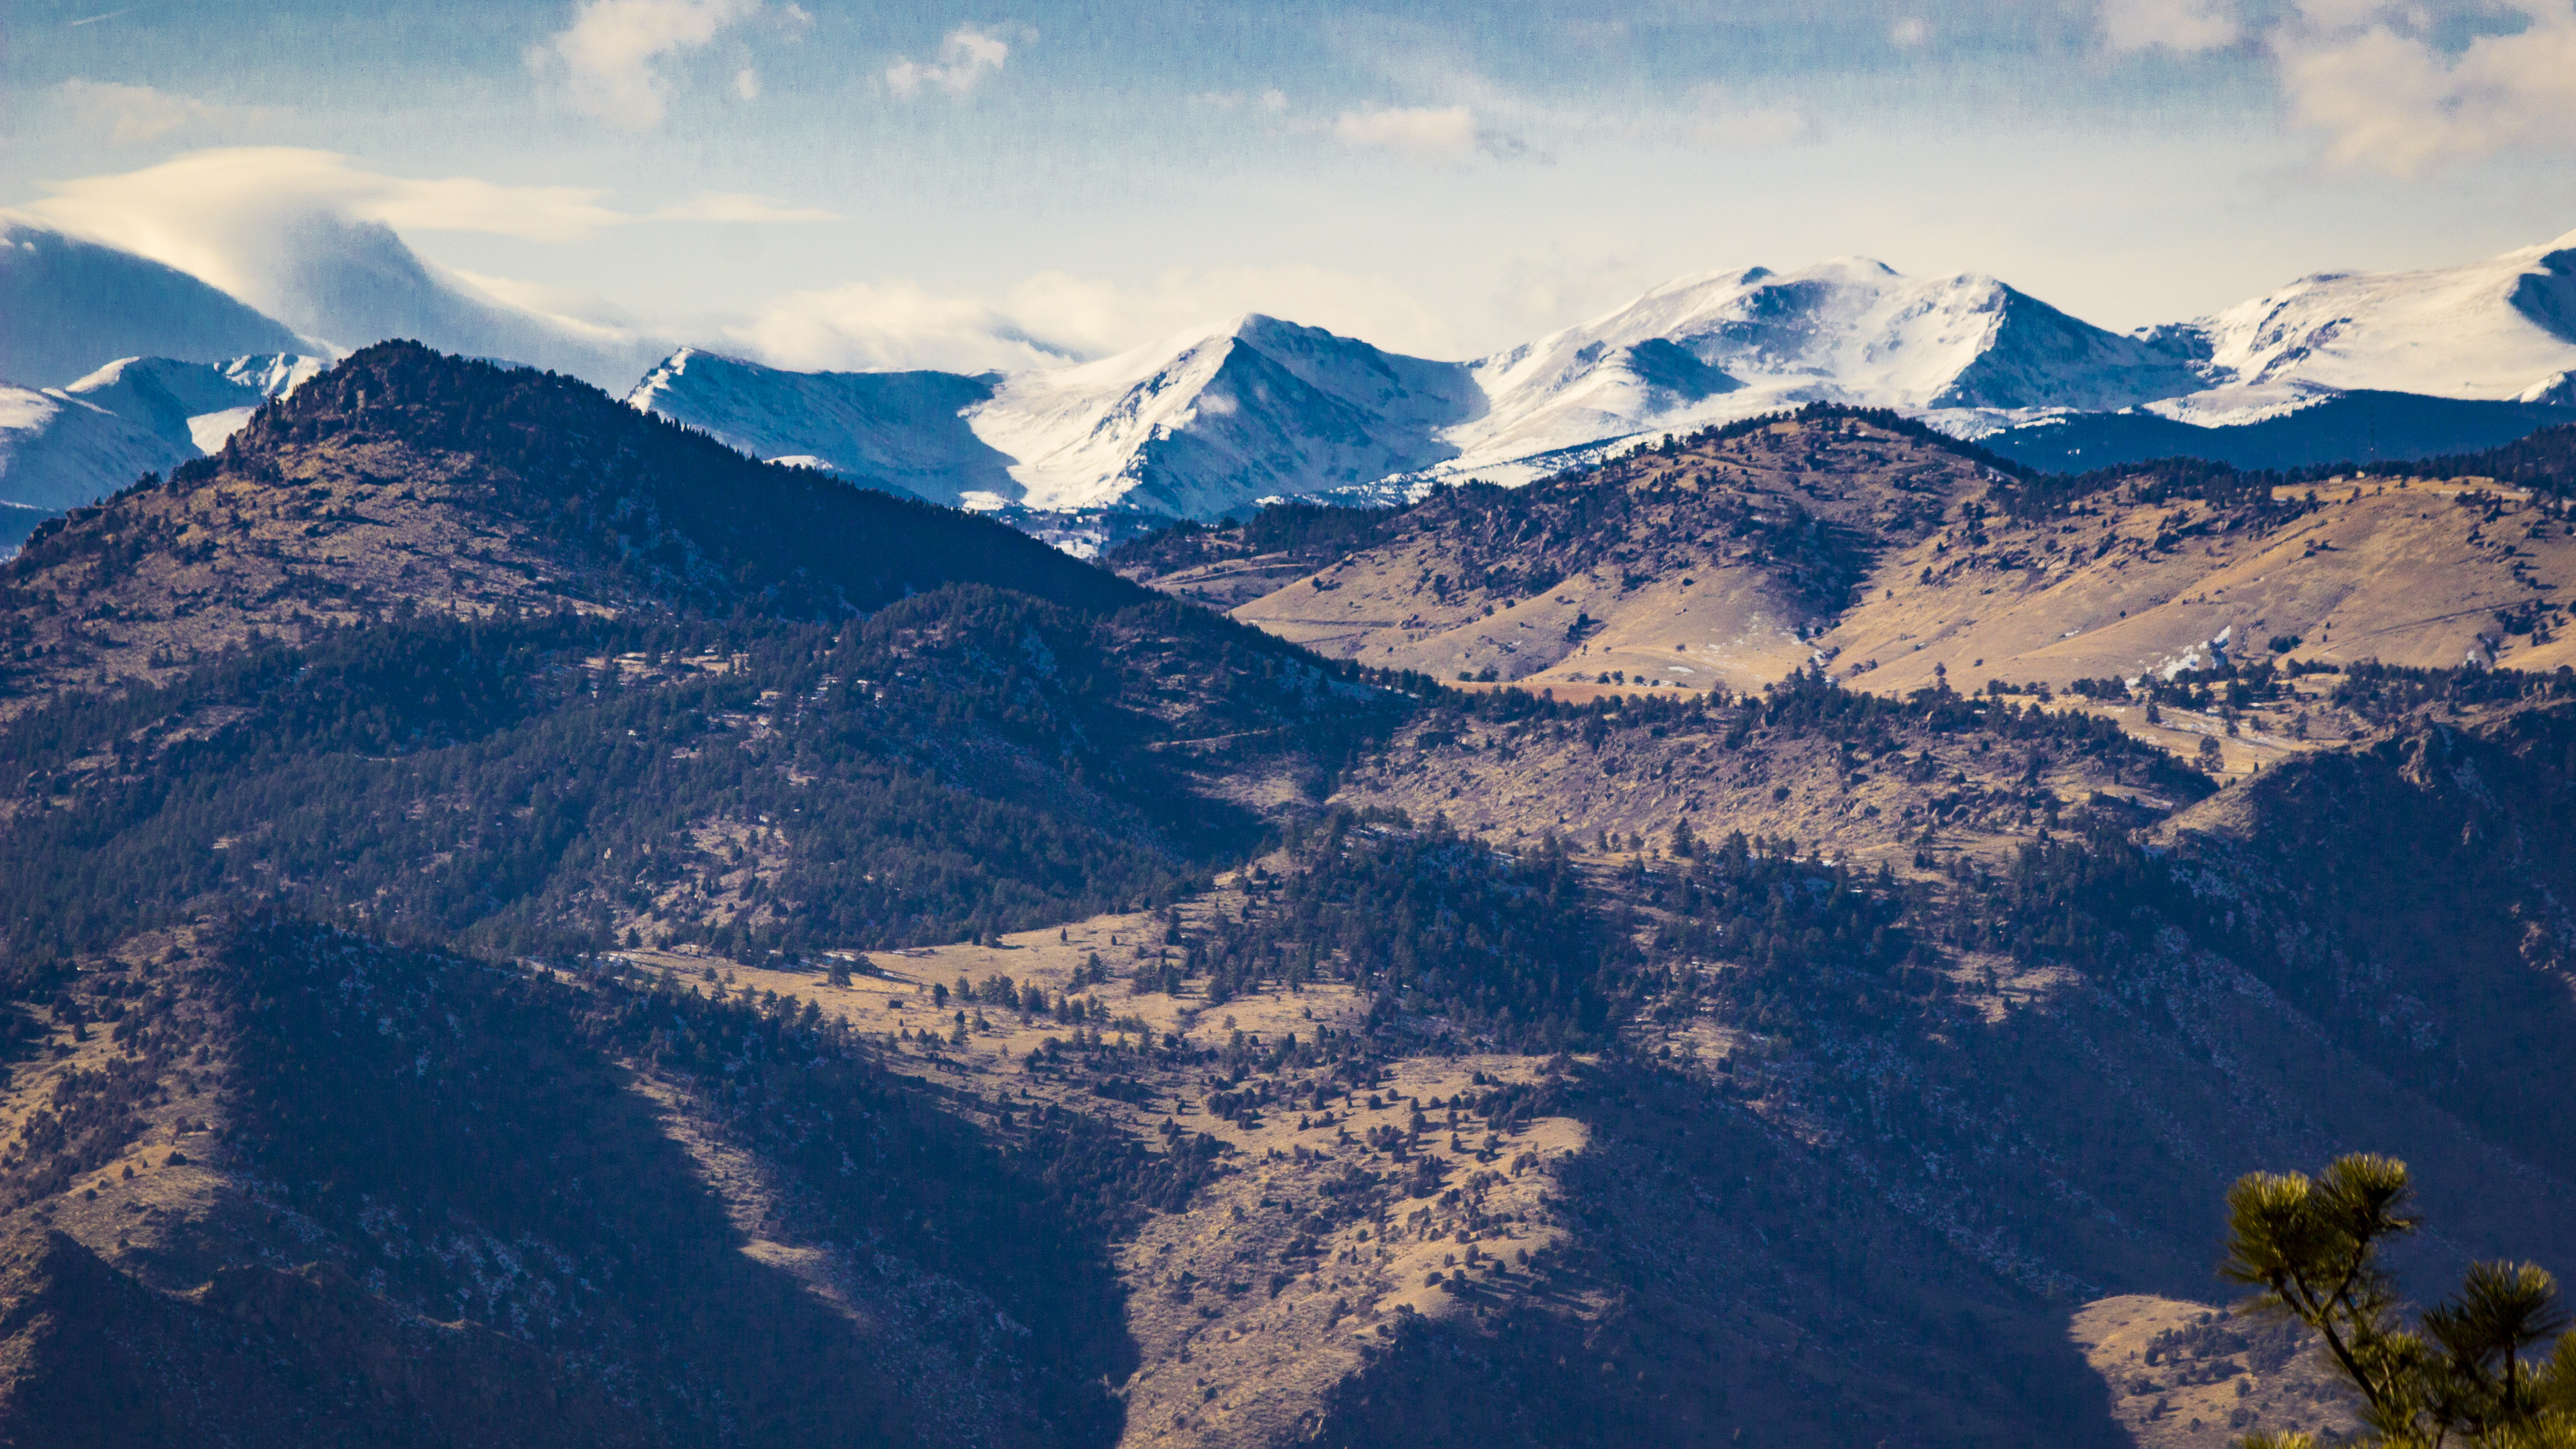 Snow on rockies photo